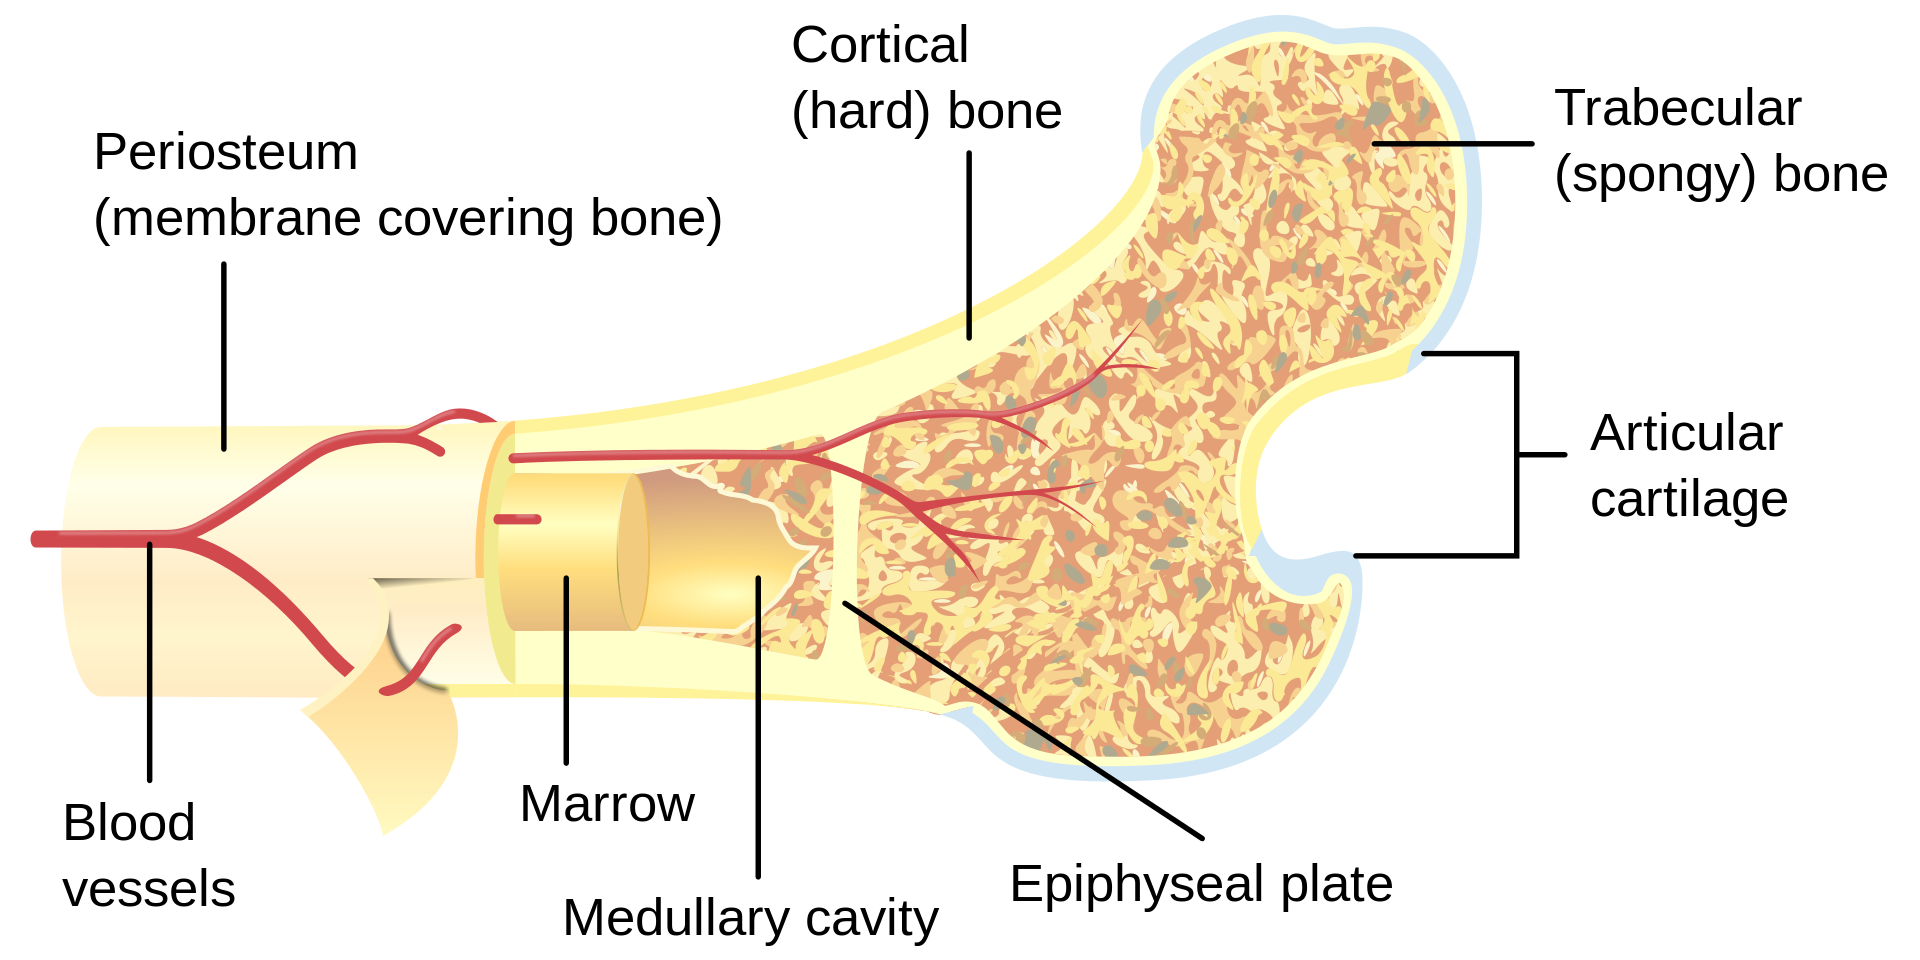 Bone_cross-section